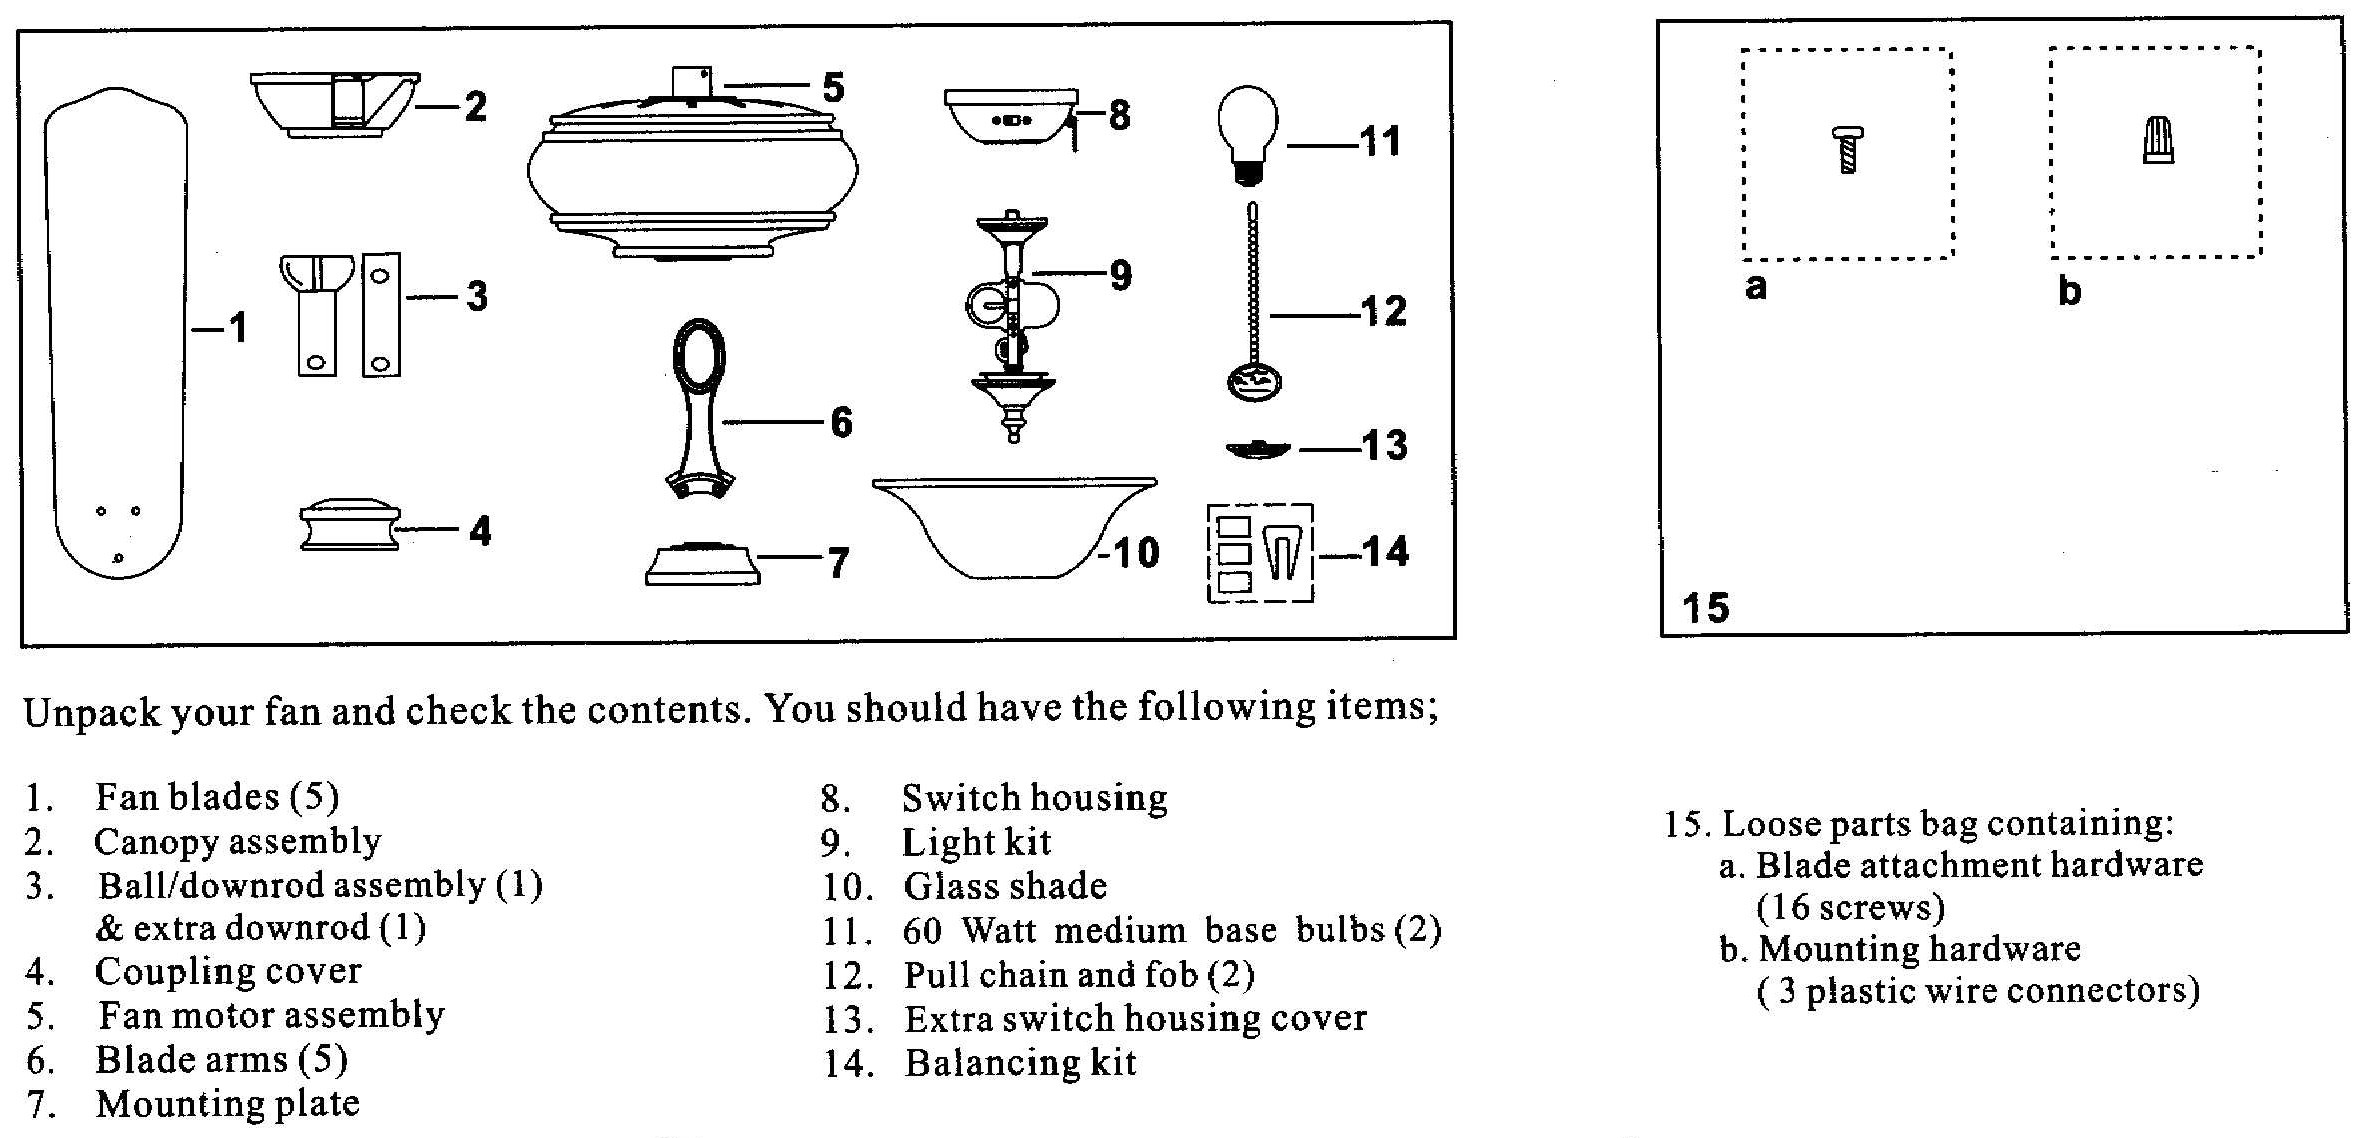 Hunter Ceiling Fan Electrical Parts : Ceiling fan schematic diagram get free image